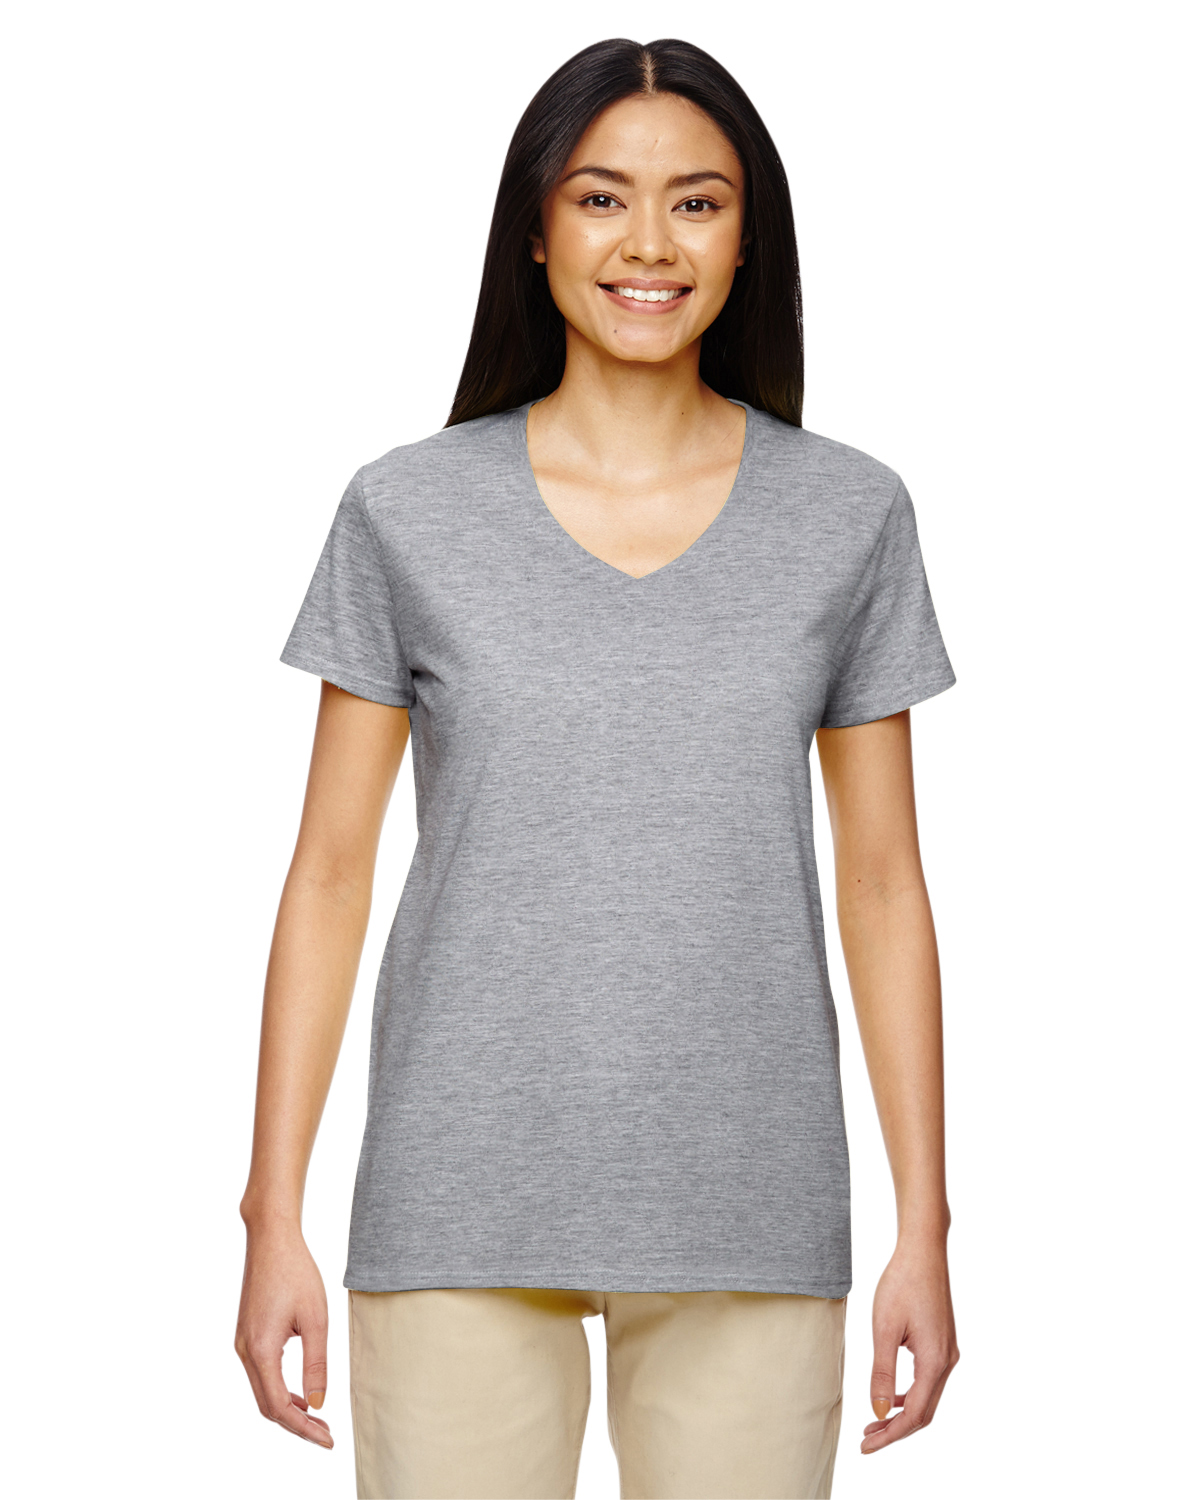 Find great deals on eBay for womens cotton t shirts. Shop with confidence.